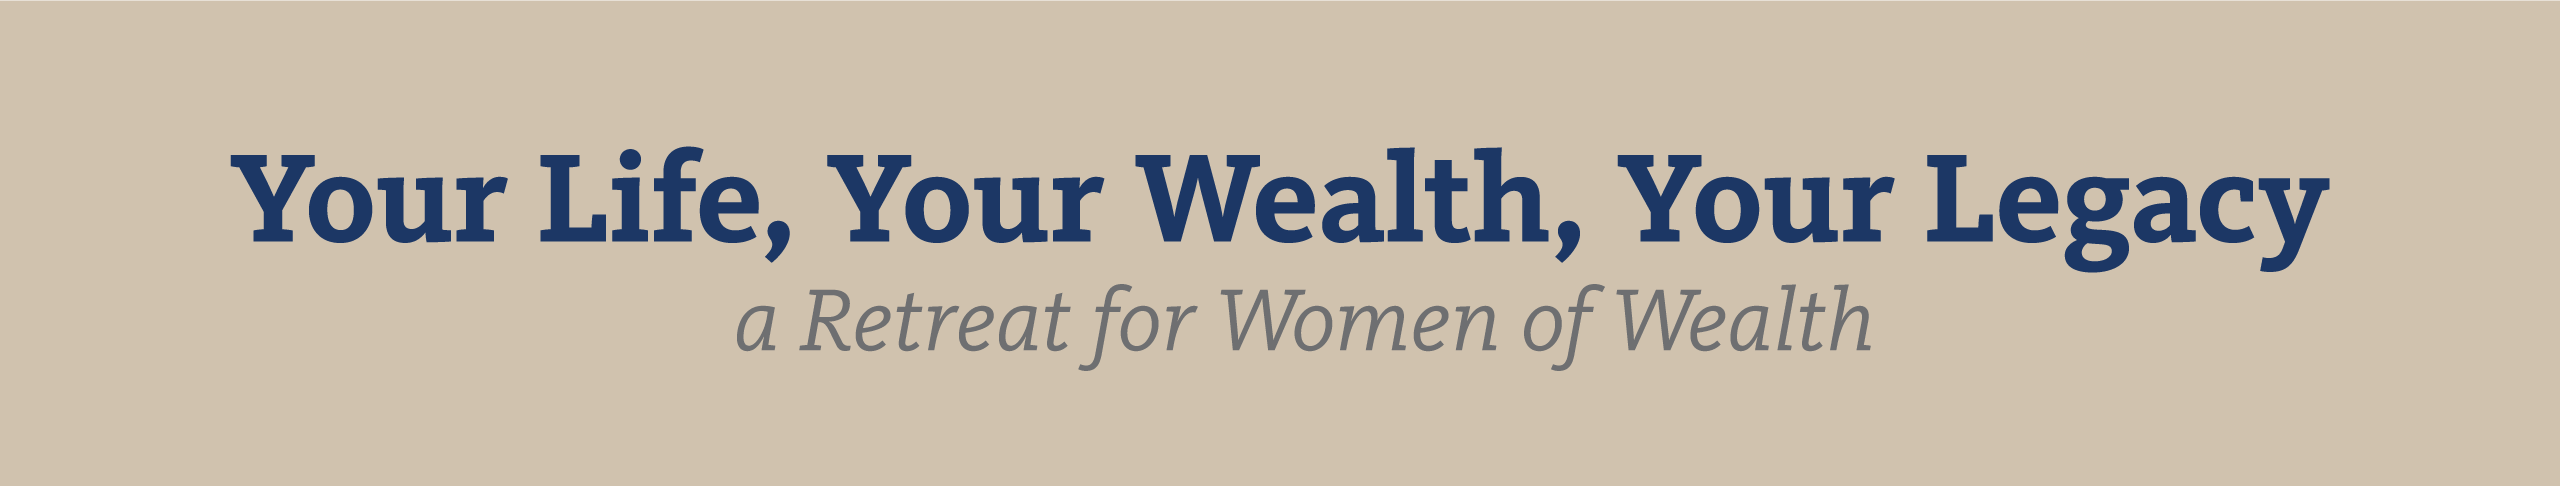 Your Life, Your Wealth, Your Legacy: A Retreat for Women of Wealth